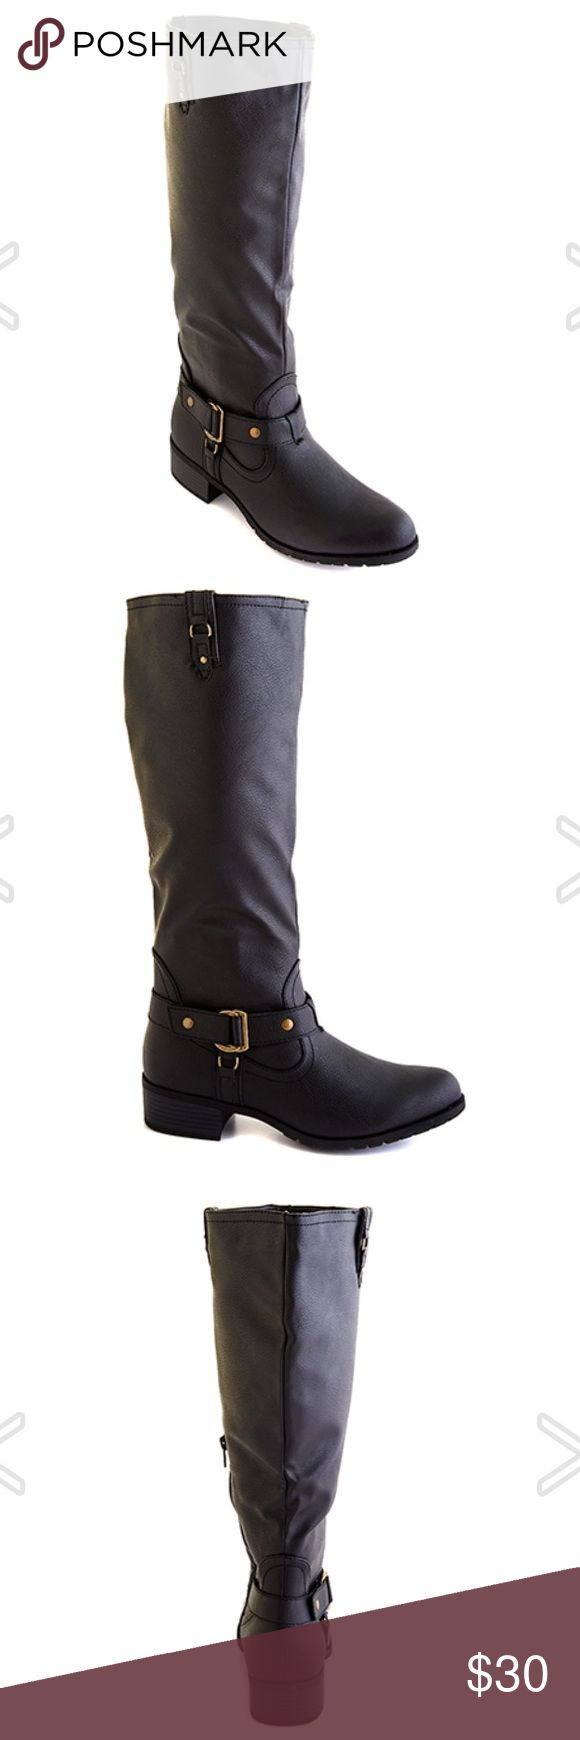 New lliya Riding Boots- Black- Size 6 Rampage Iliya tall shaft riding boots feature a faux leather upper, decorative metal hardware, fabric lining, padded foot bed and a durable man made out sole with a 1 1/2 inch heel. 16 inch shaft. 15 inch circumference. Rampage Shoes